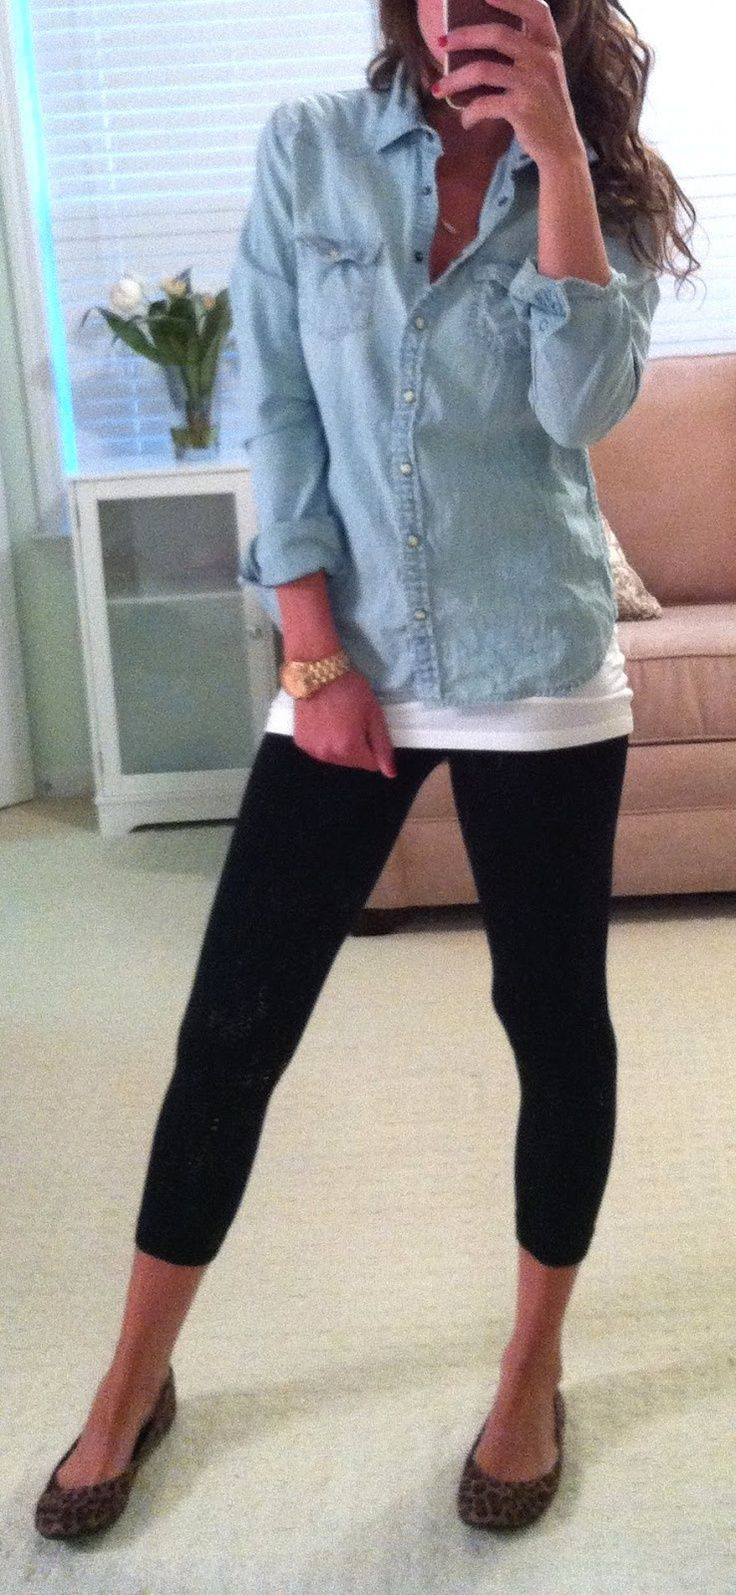 denim, leggings and flats = perfect travel outfit. Will be perfect when o shred these few pounds